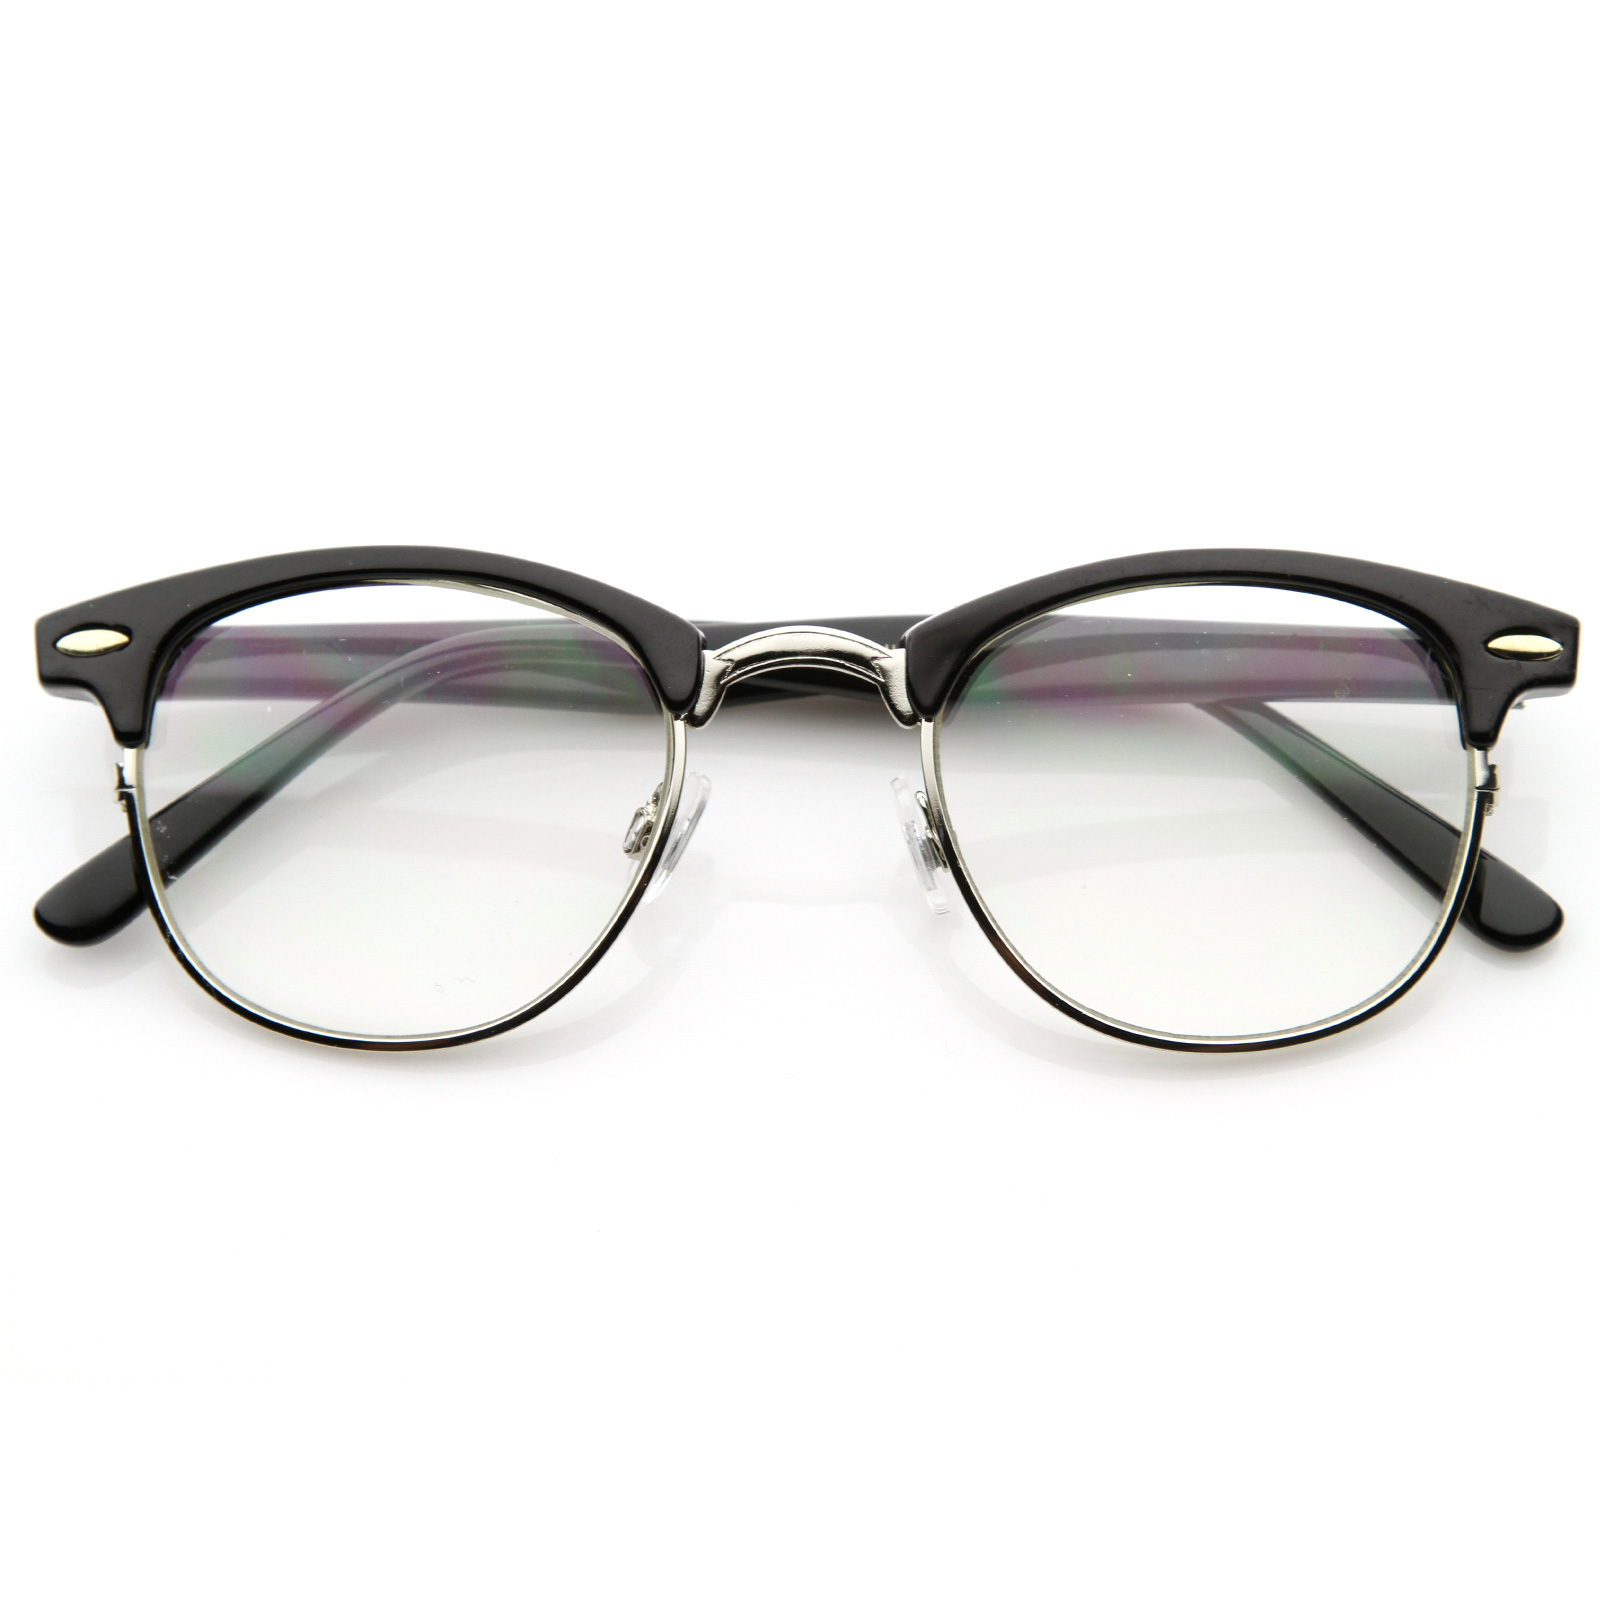 Wayfarer Eyeglasses Half Frame : New Original RX Optical Classical Clear Lens Half Frame ...